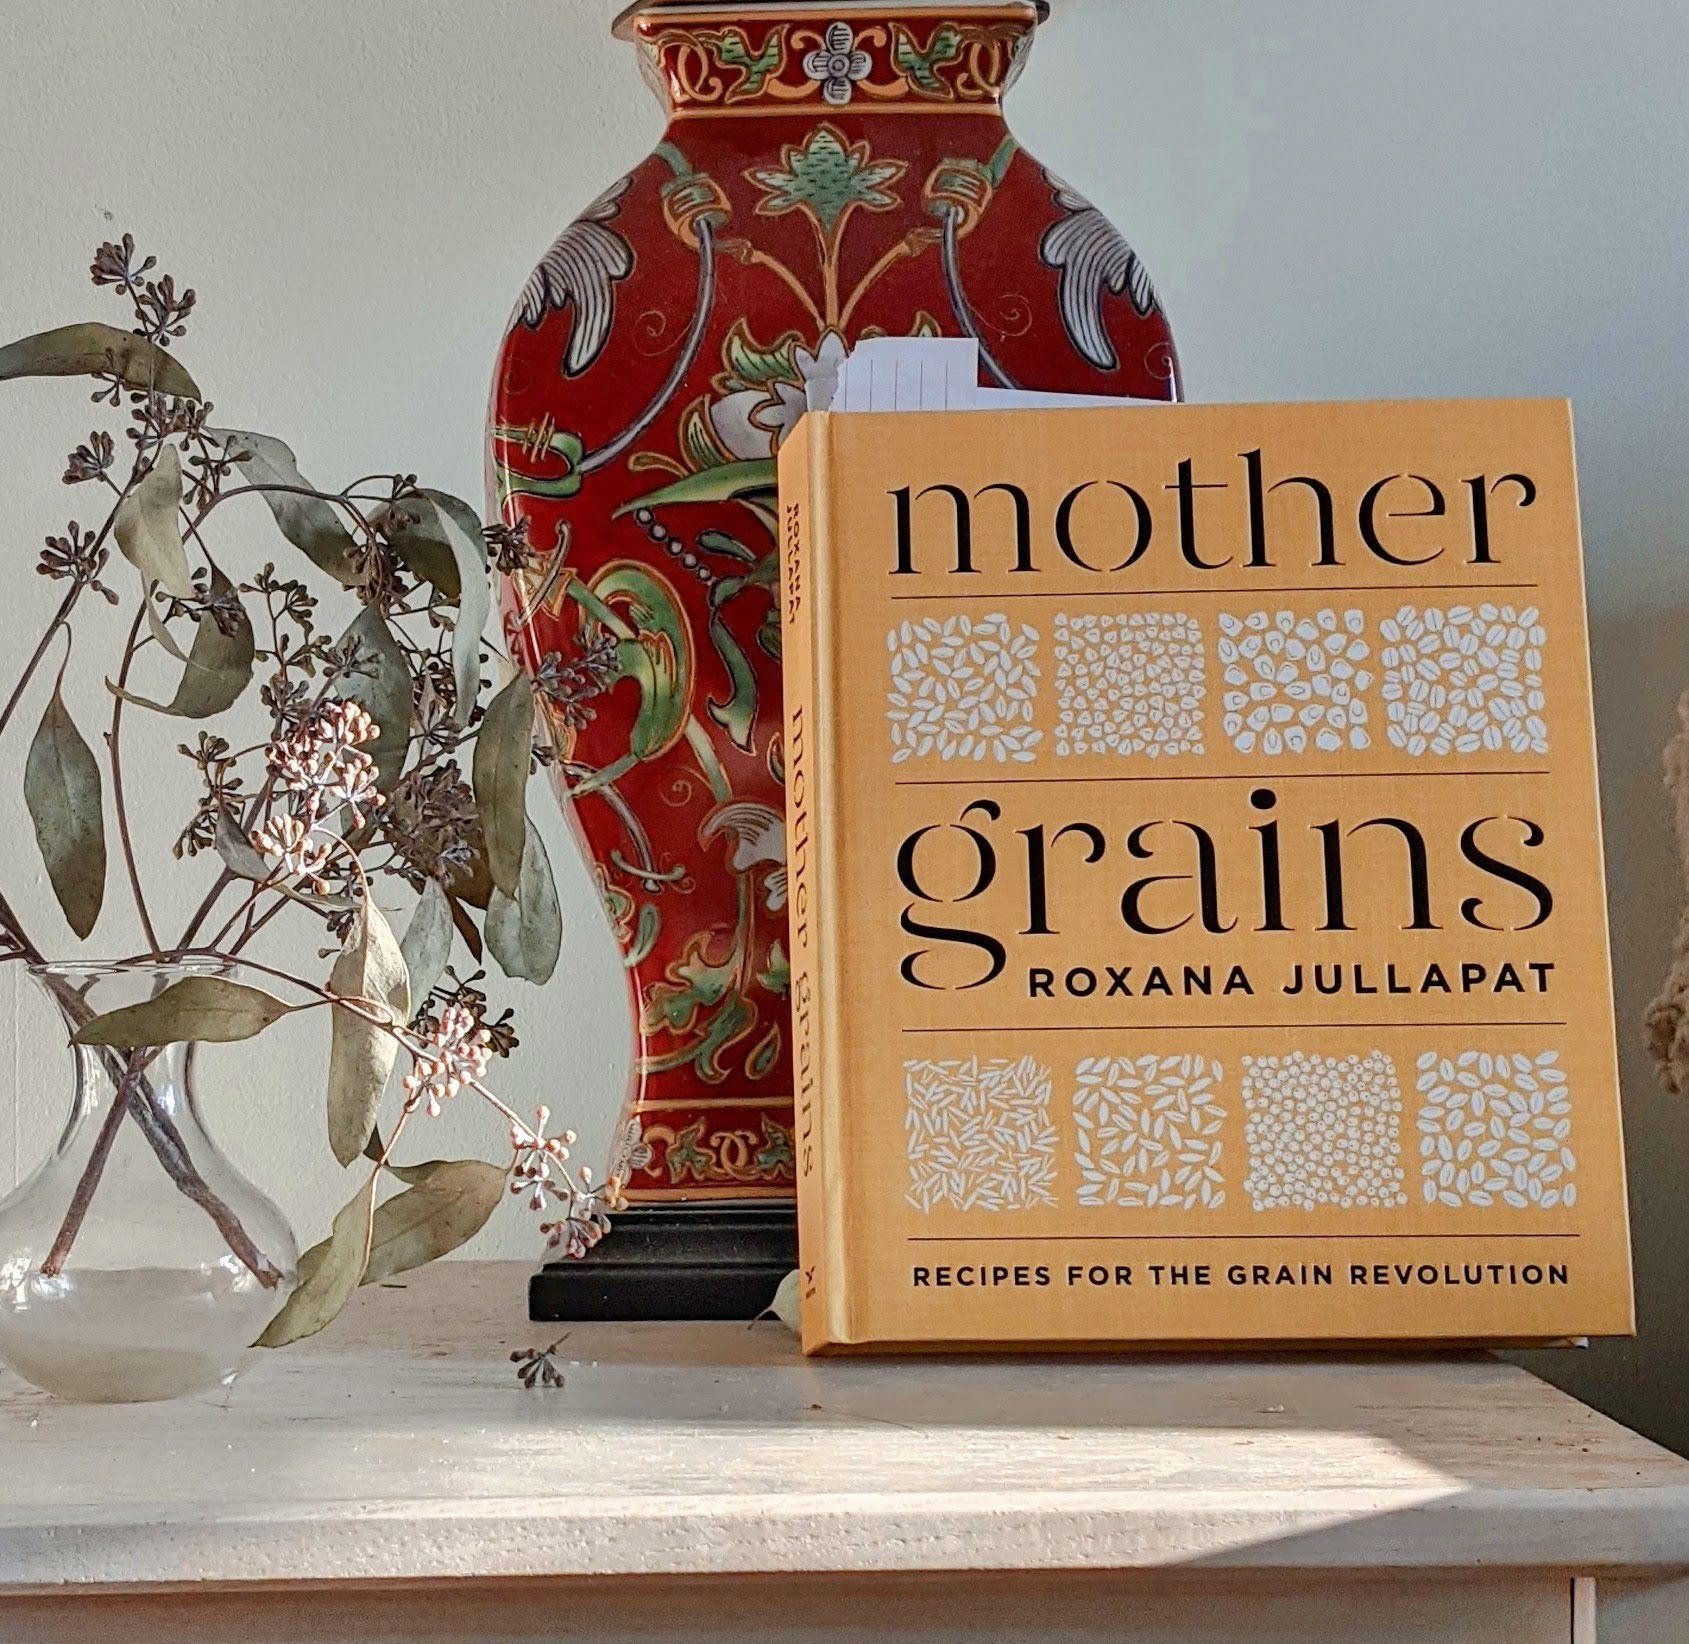 Cover of the cookbook Mother Grains, leaning on red vase with dried flowers